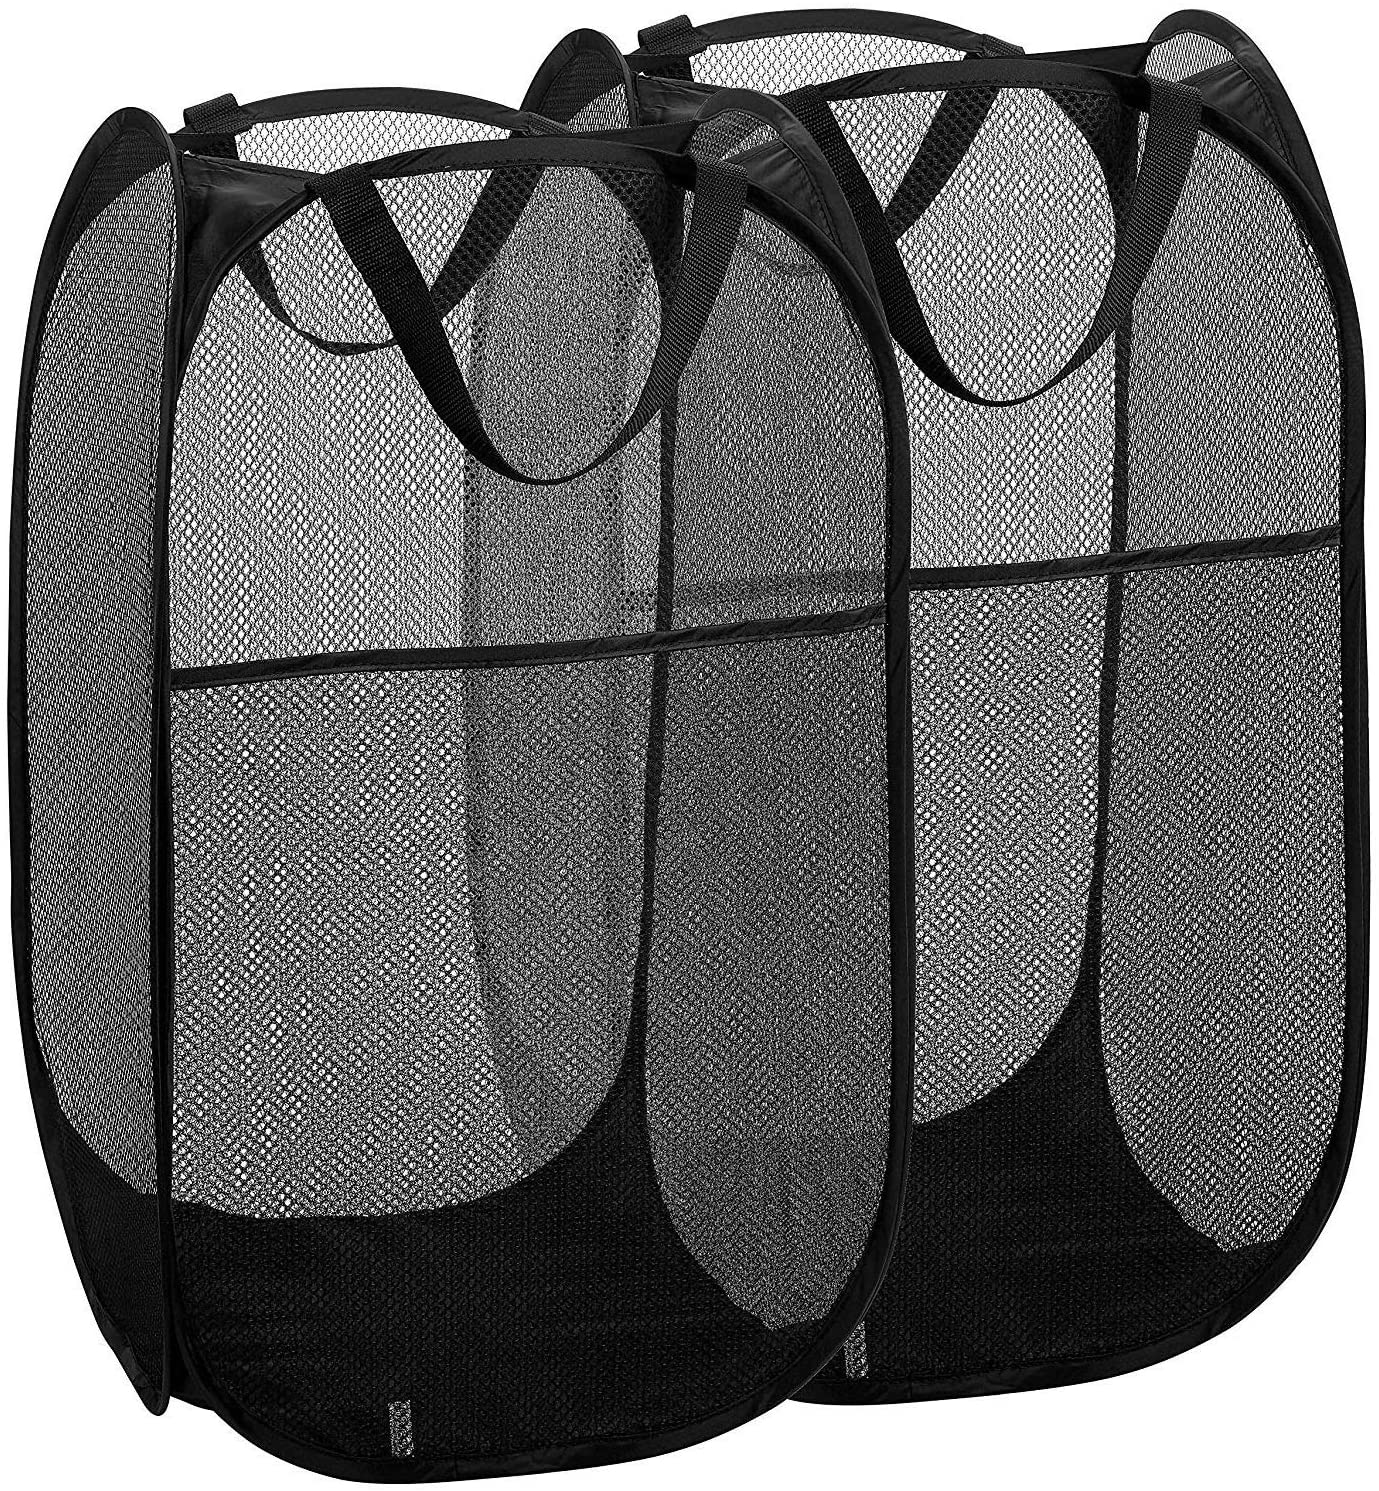 2 Packs Mesh Pop overseas up Laundry Durabl with Black Hamper Portable free